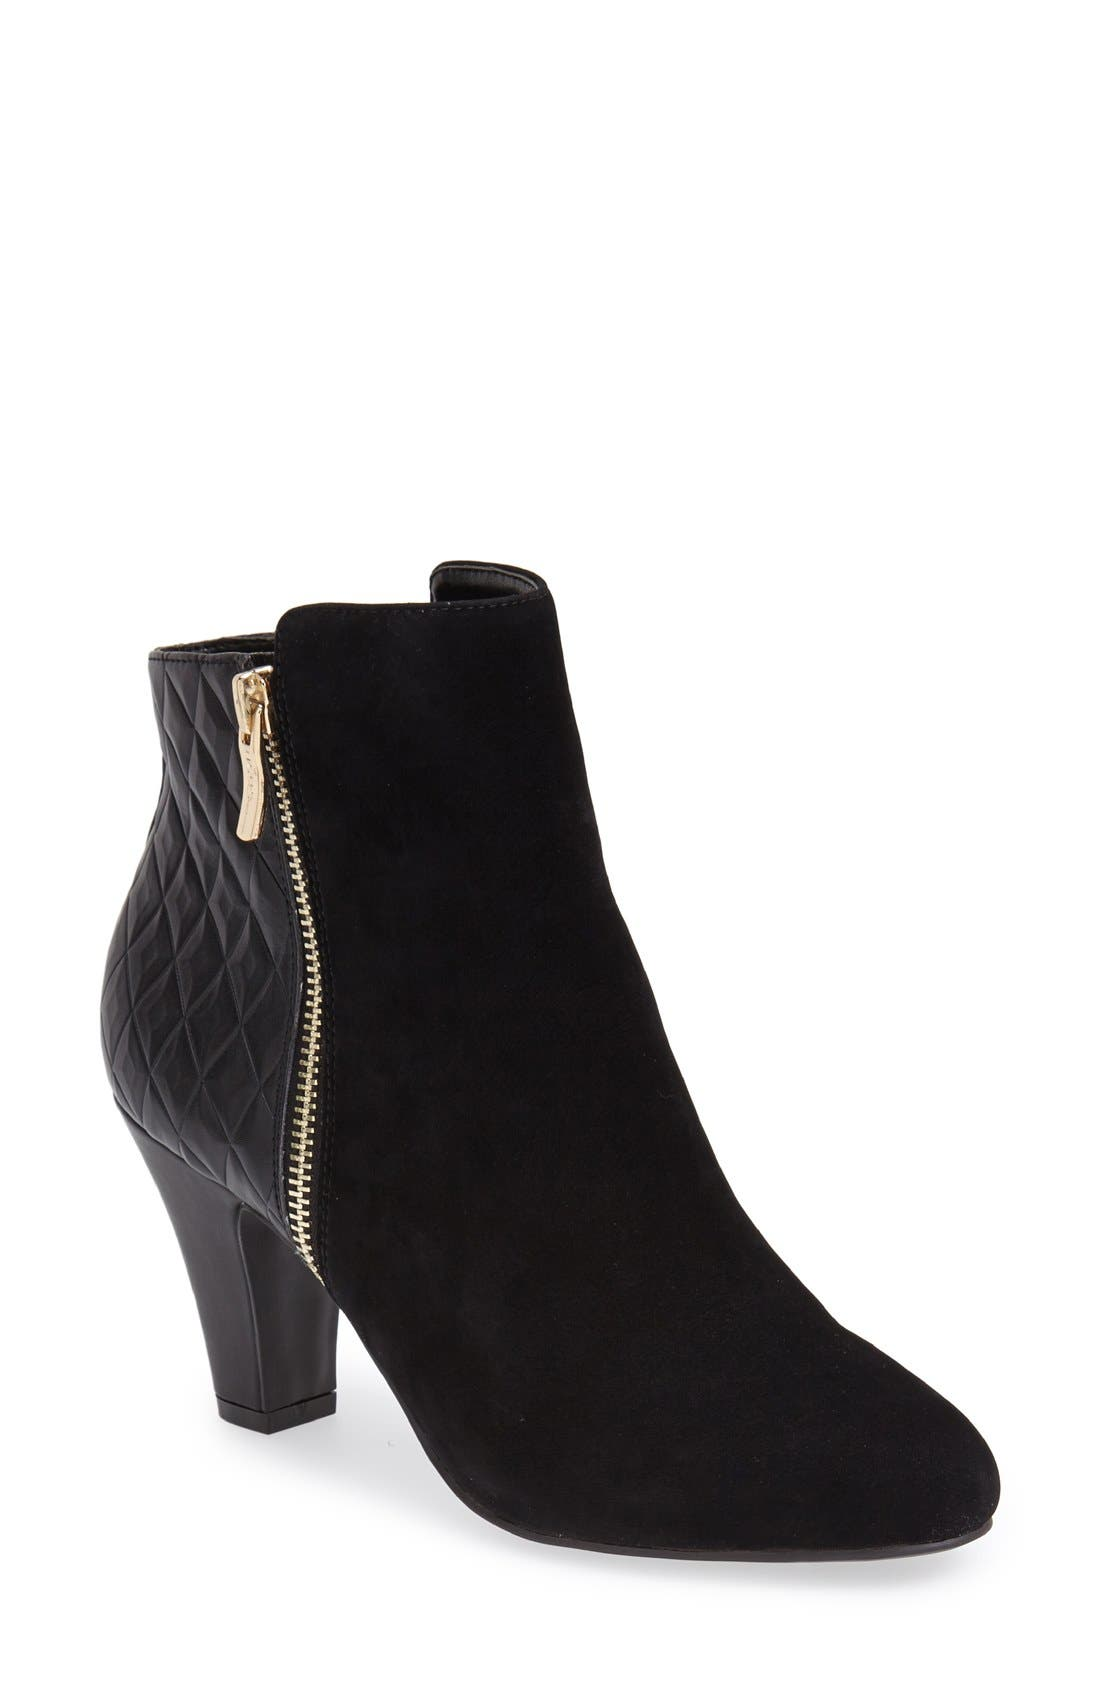 Main Image - BCBGeneration 'Dawn' Ankle Bootie (Women)